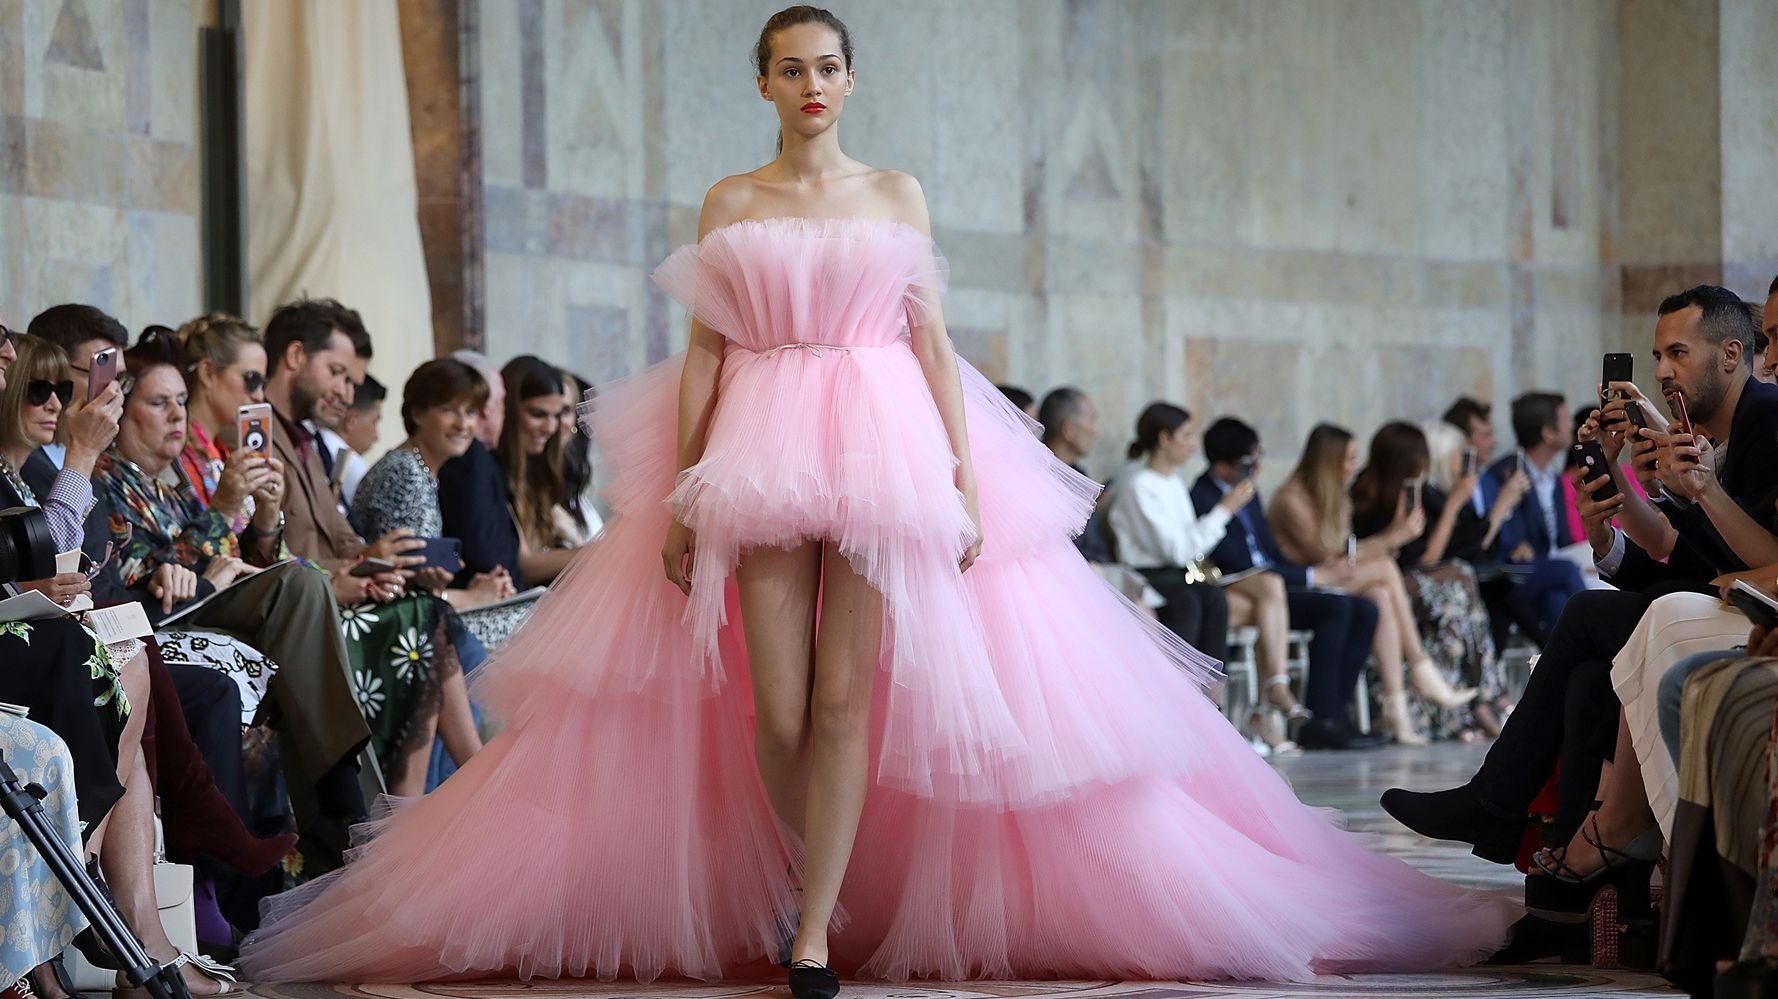 Haute Couture The Wedding Dresses Dreams Are Made Of From Dior Elie Saab And Chanel Huffpost Australia Style